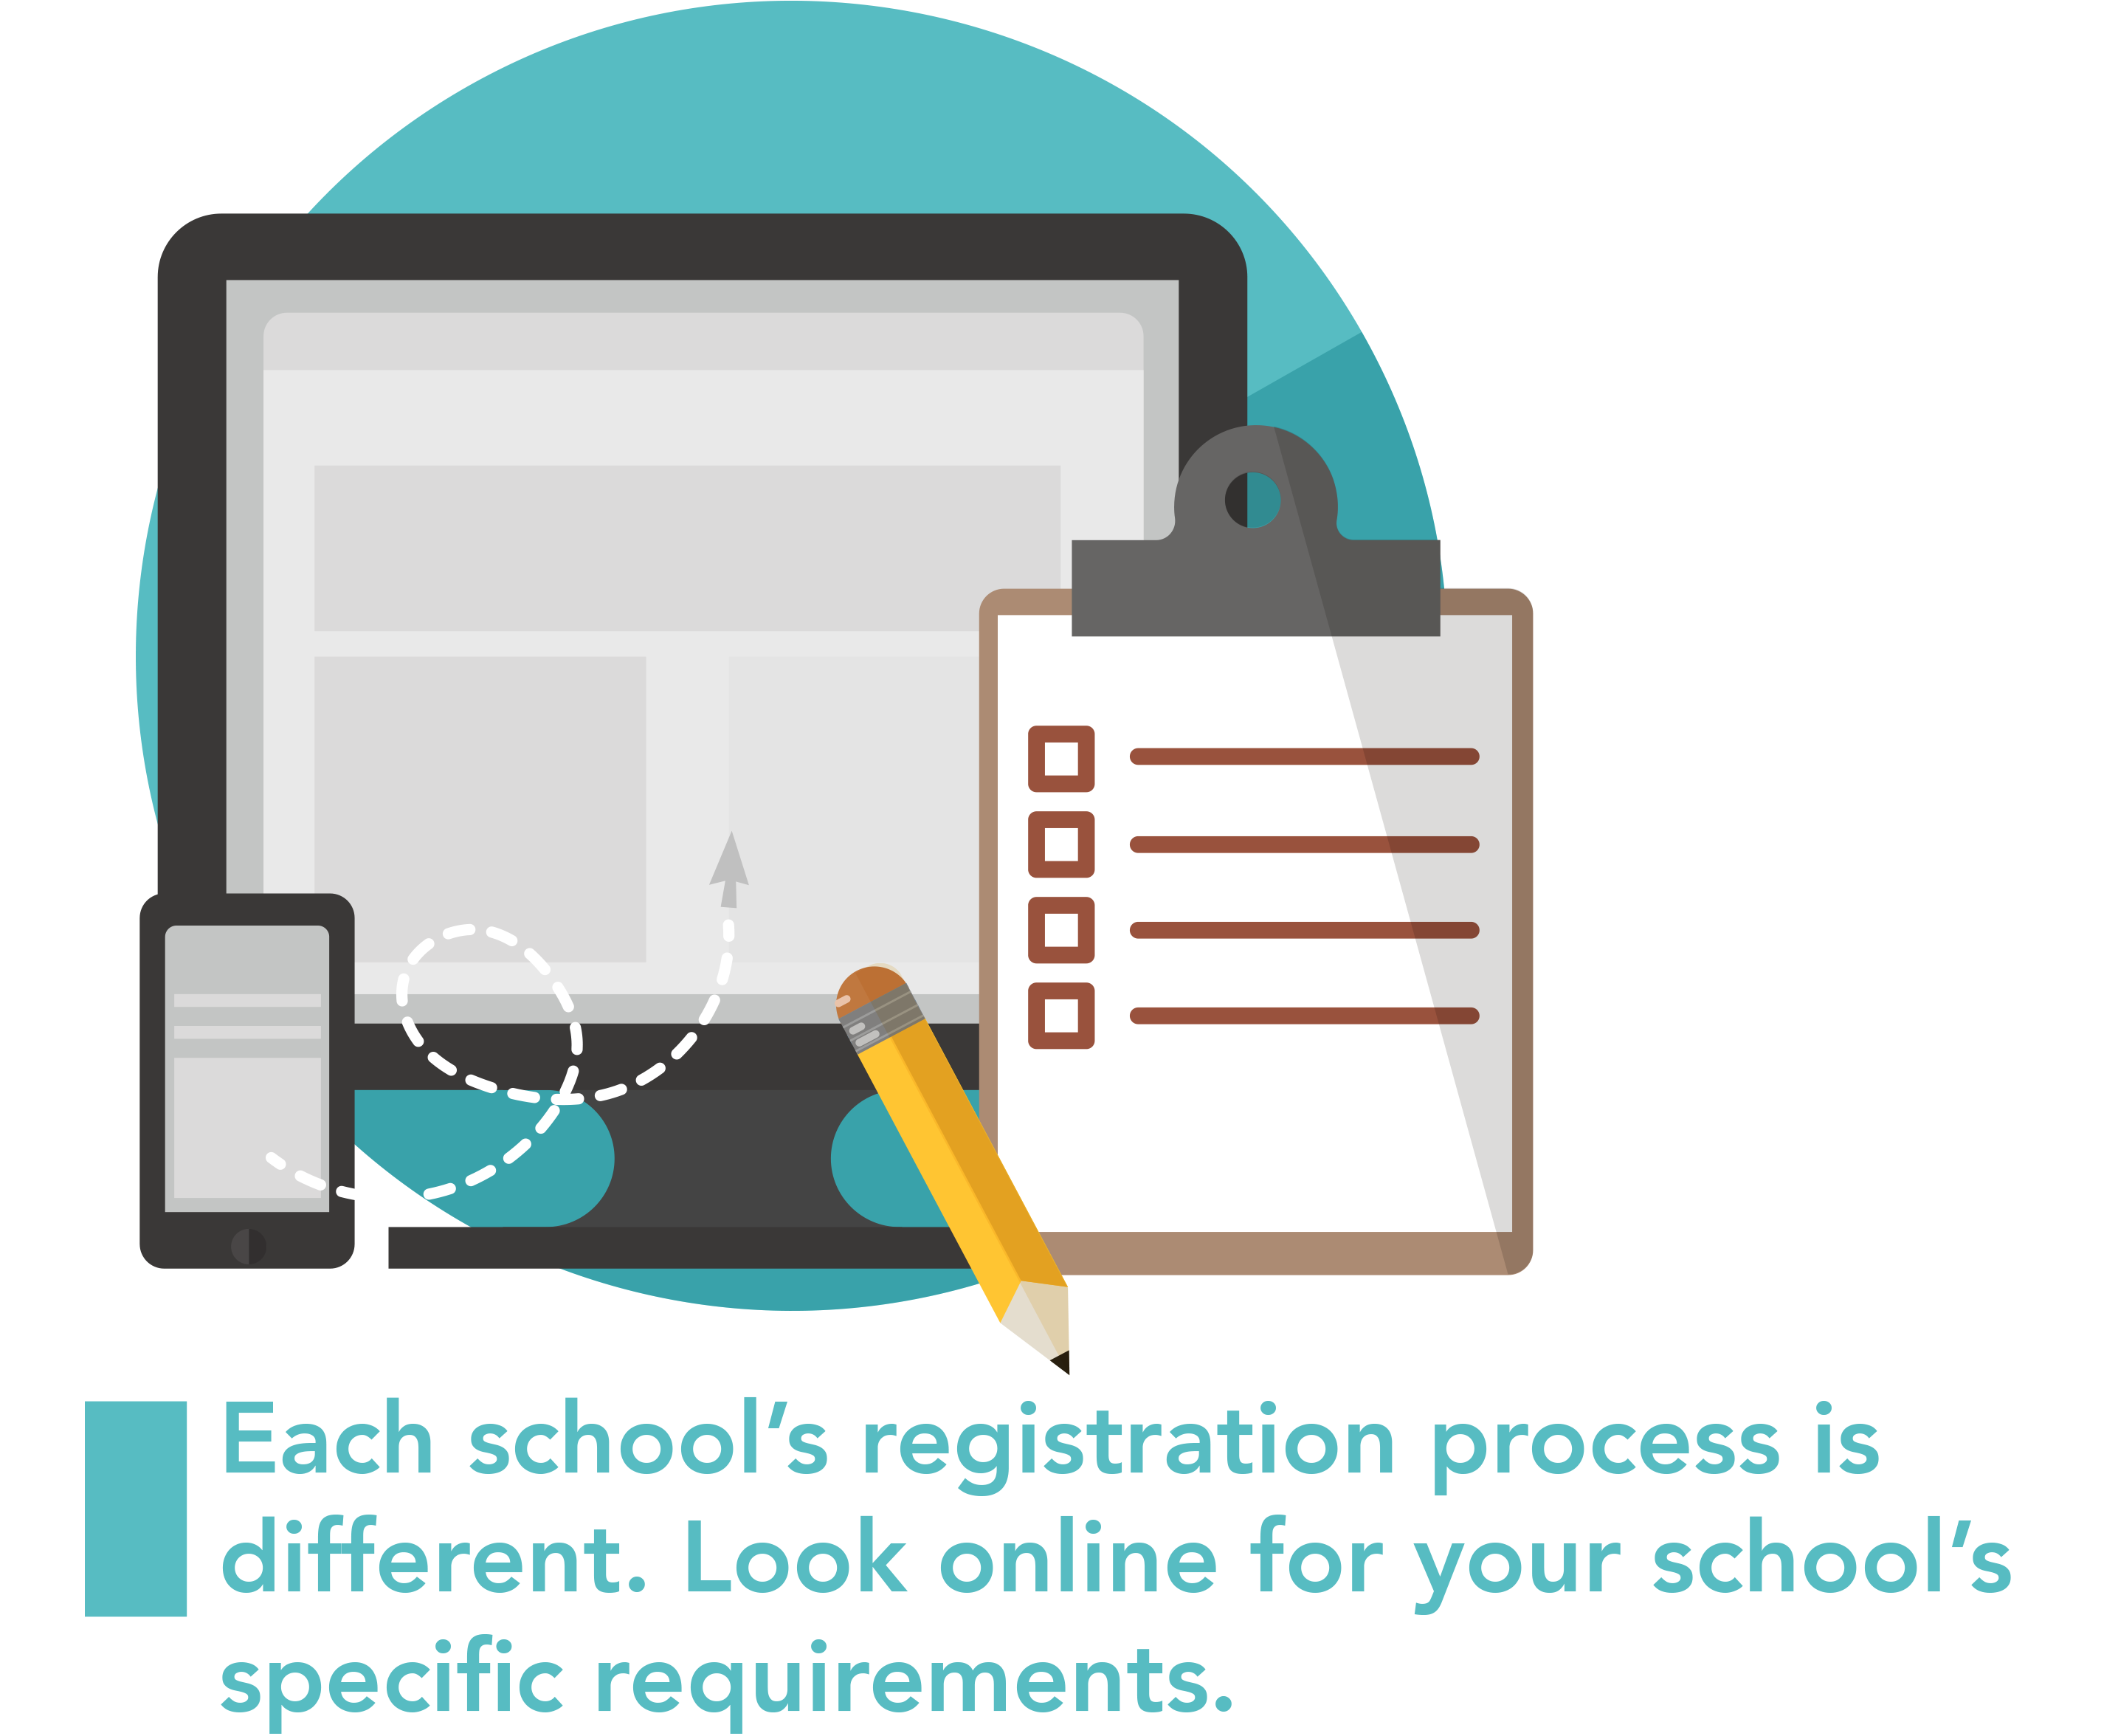 A graphic representing that each school's registration process is different.